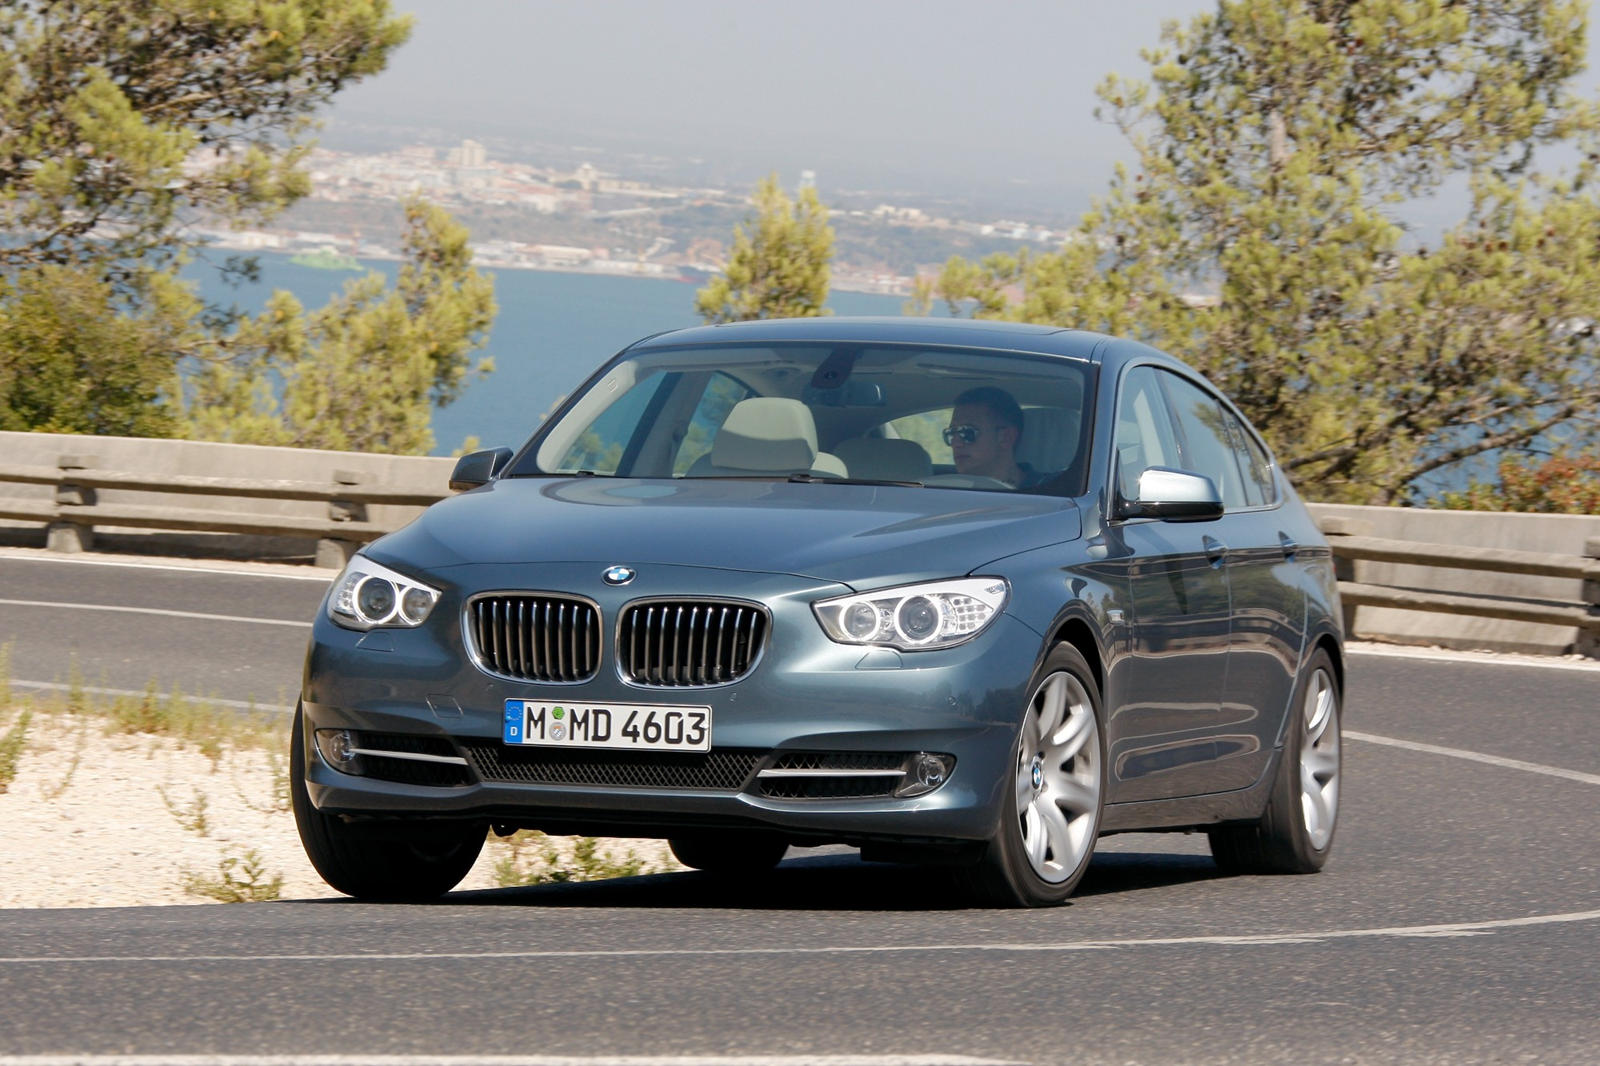 2010 Bmw 5 Series Gran Turismo Review Trims Specs Price New Interior Features Exterior Design And Specifications Carbuzz